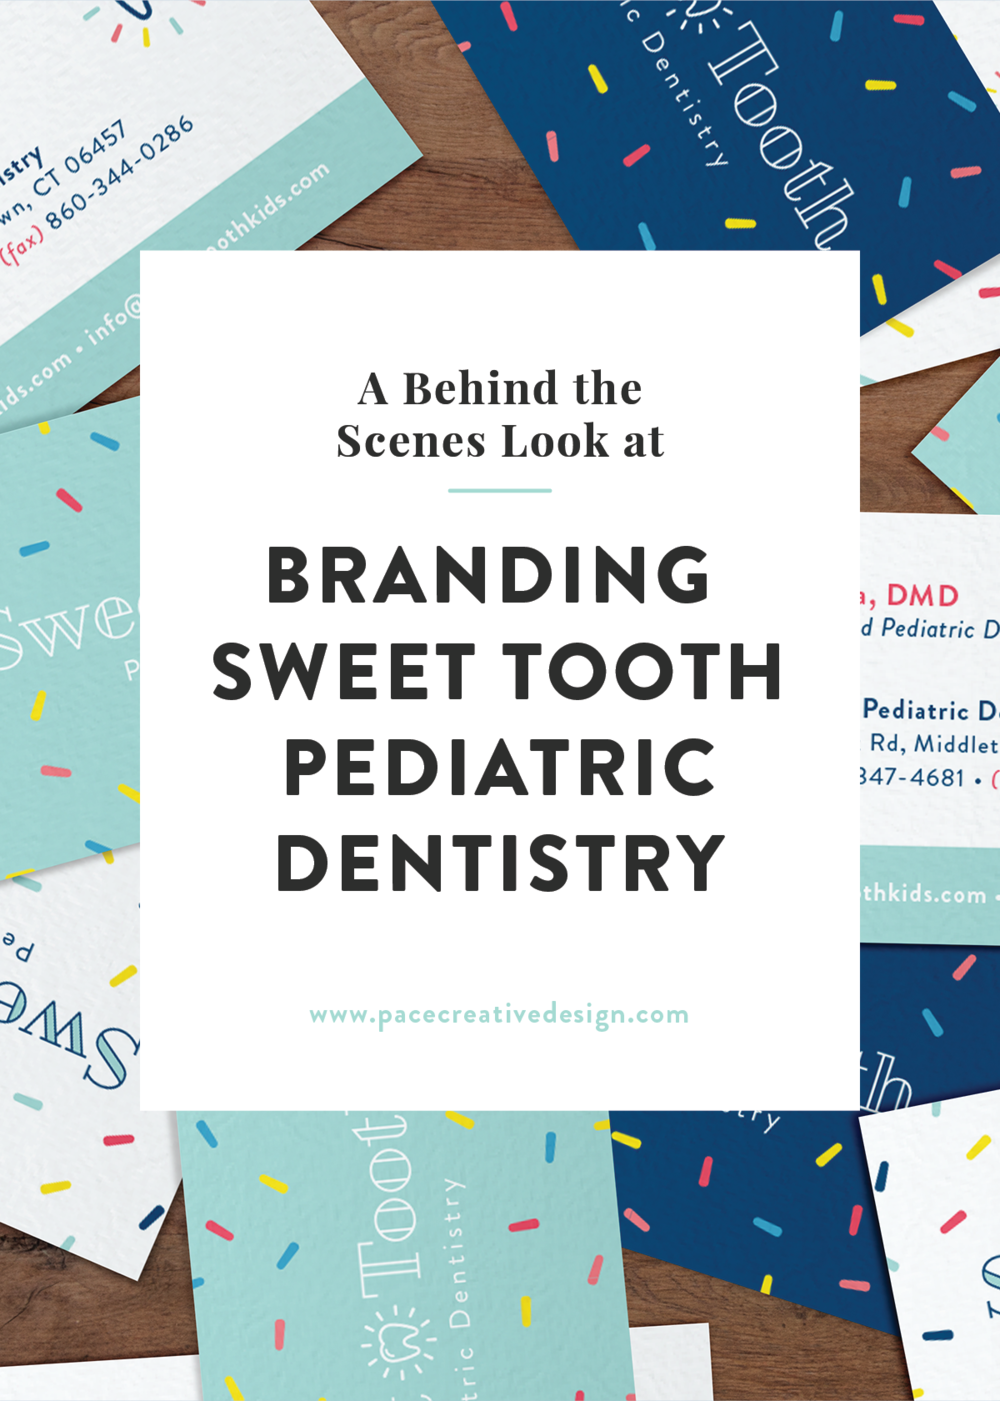 Project Spotlight: Sweet Tooth Pediatric Dentistry Brand Design by Pace Creative Design Studio